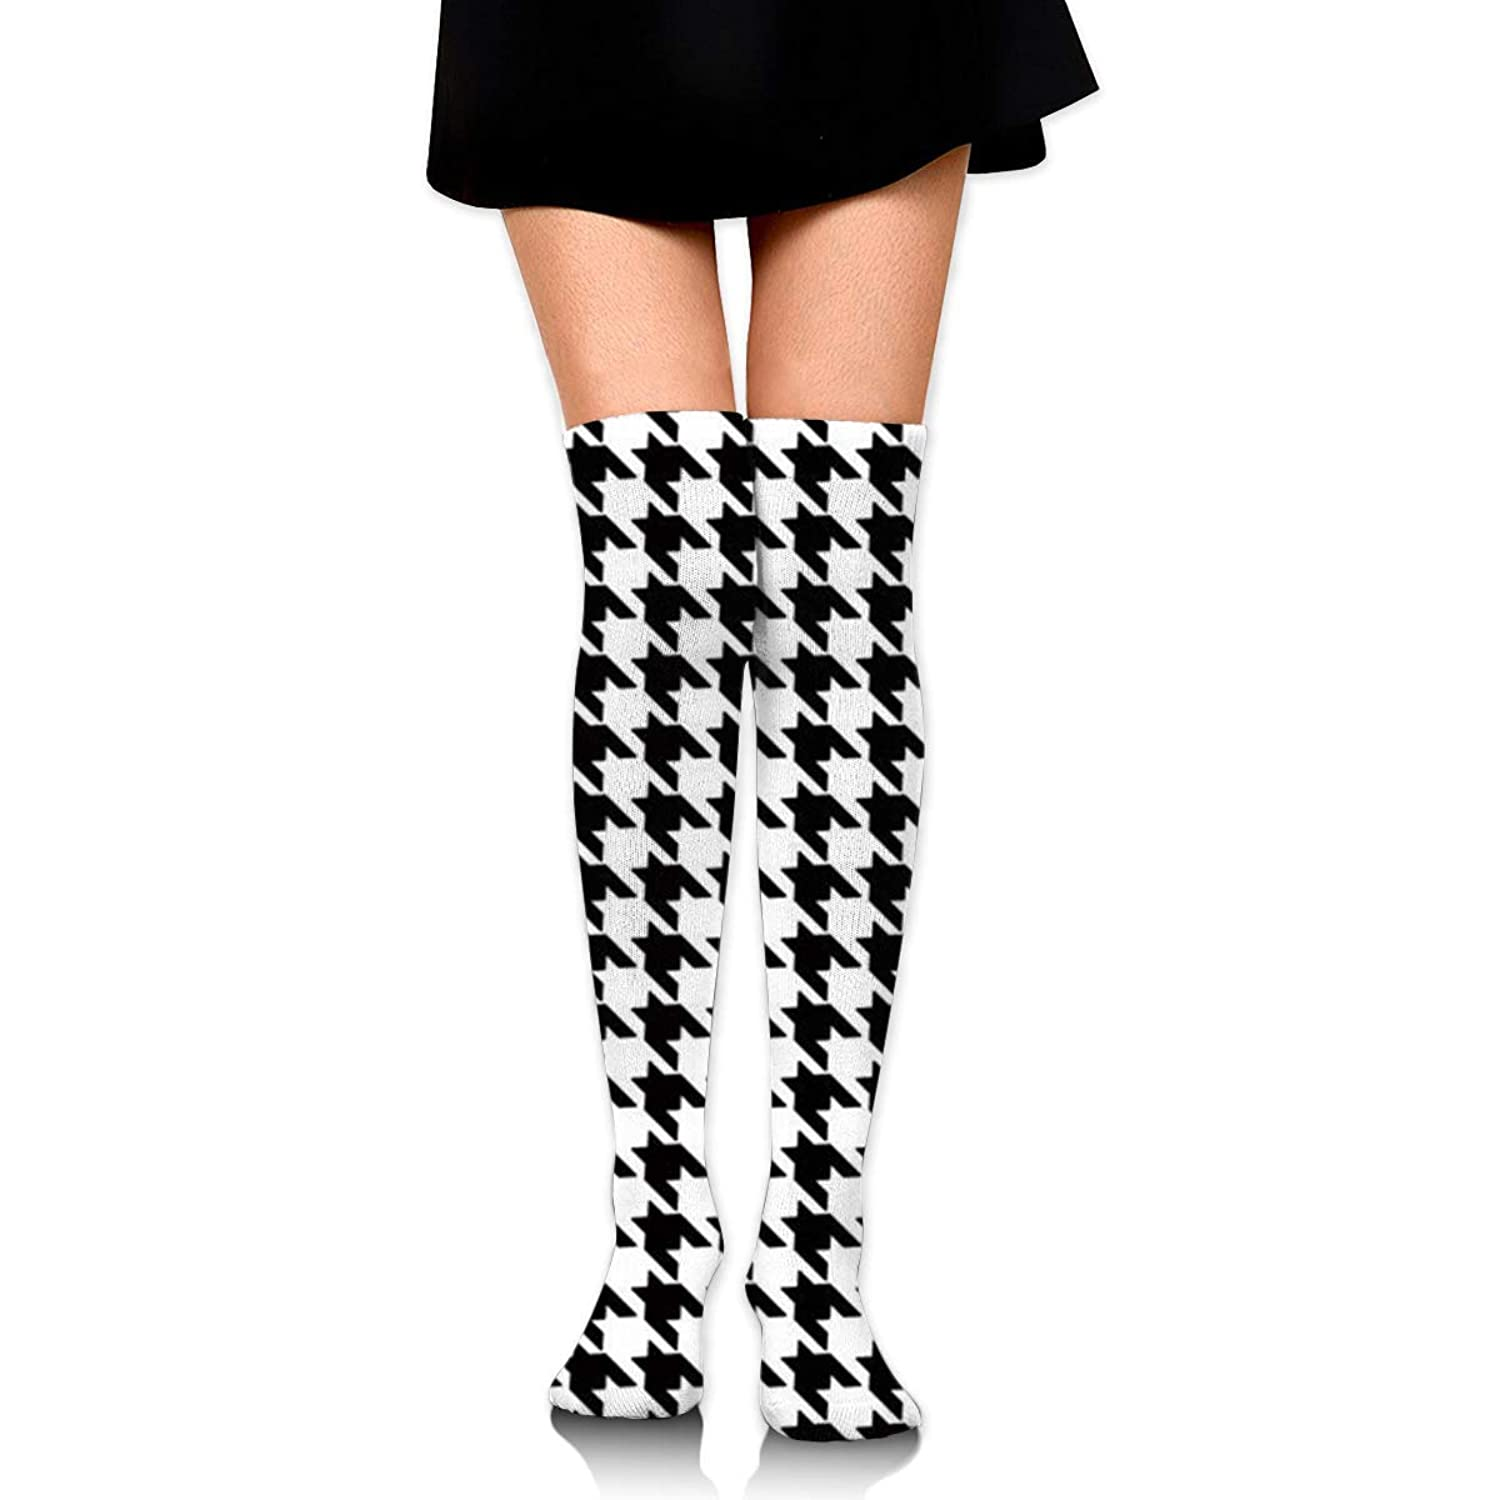 MKLOS 通気性 圧縮ソックス Breathable Knee High Leg Warmer Black and White Houndstooth Exotic Psychedelic Print Compression High Tube Thigh Boot Stockings Women Girl